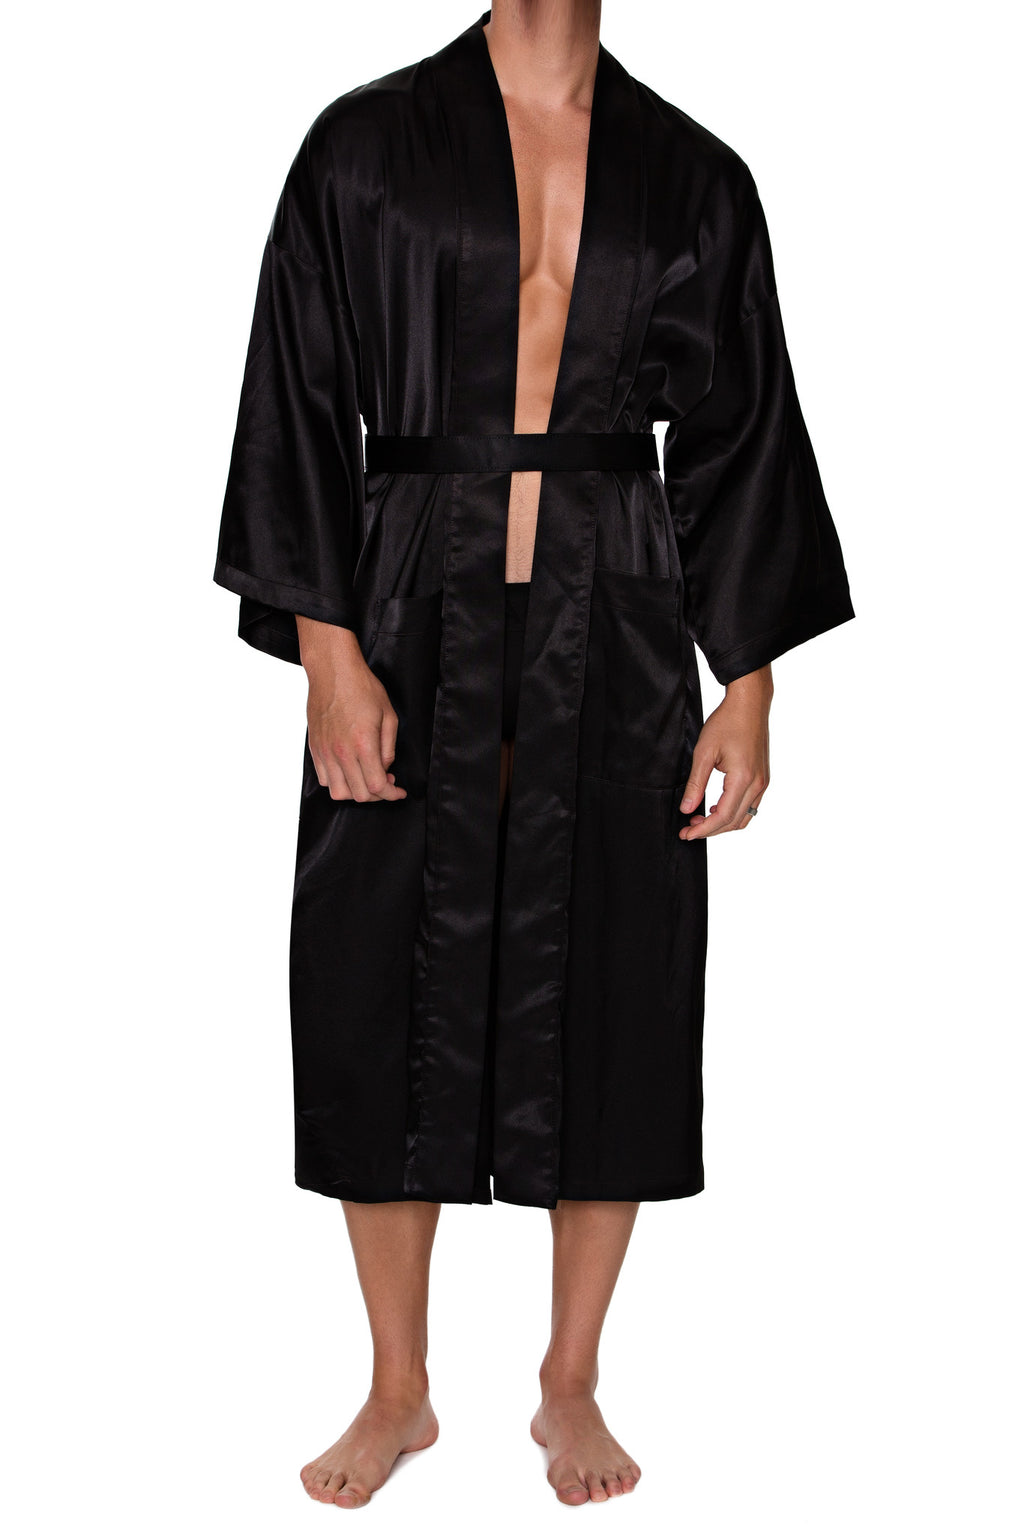 FULL LENGTH ROBE in SATIN - MENAGERIÉ Intimates